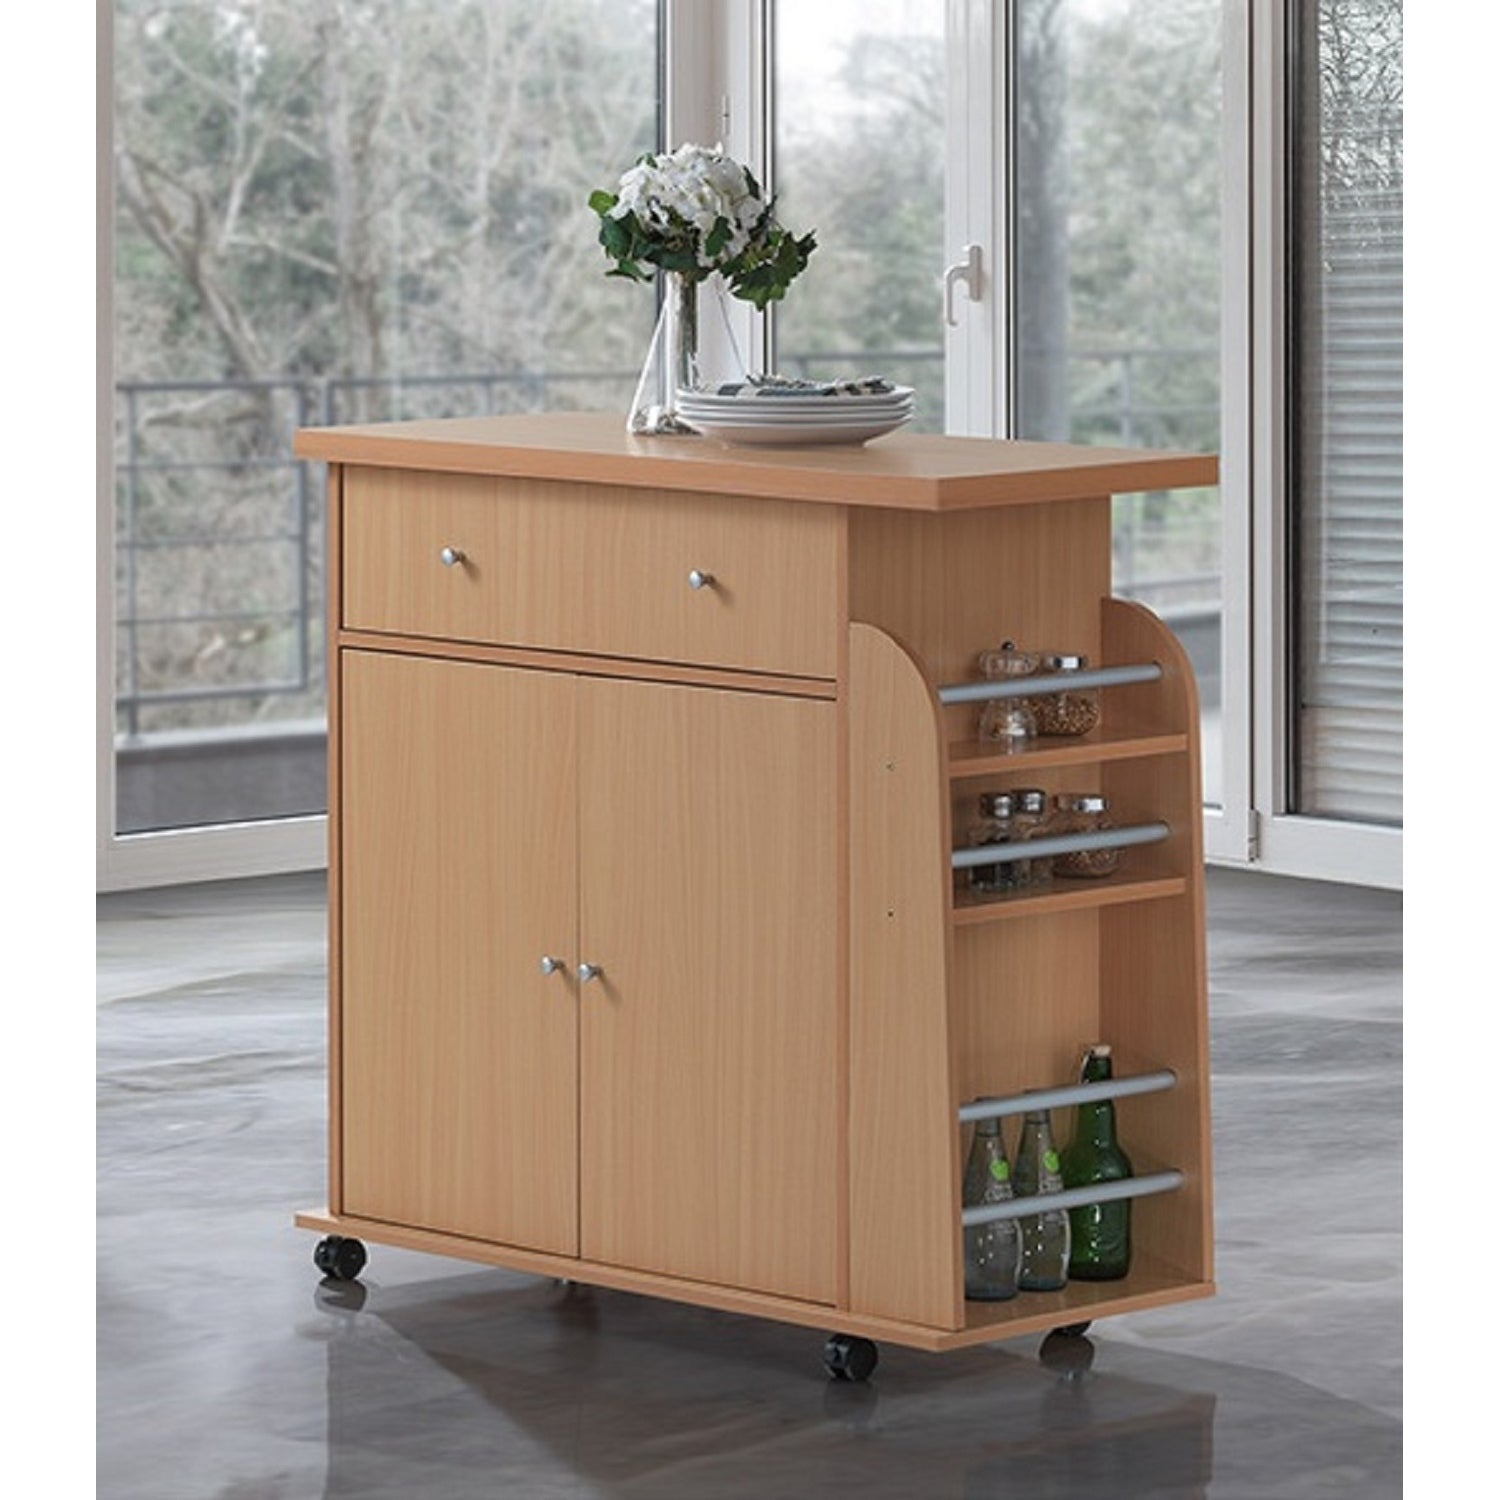 Hodedah Modern Mobile Kitchen Island with Spice Rack and ...